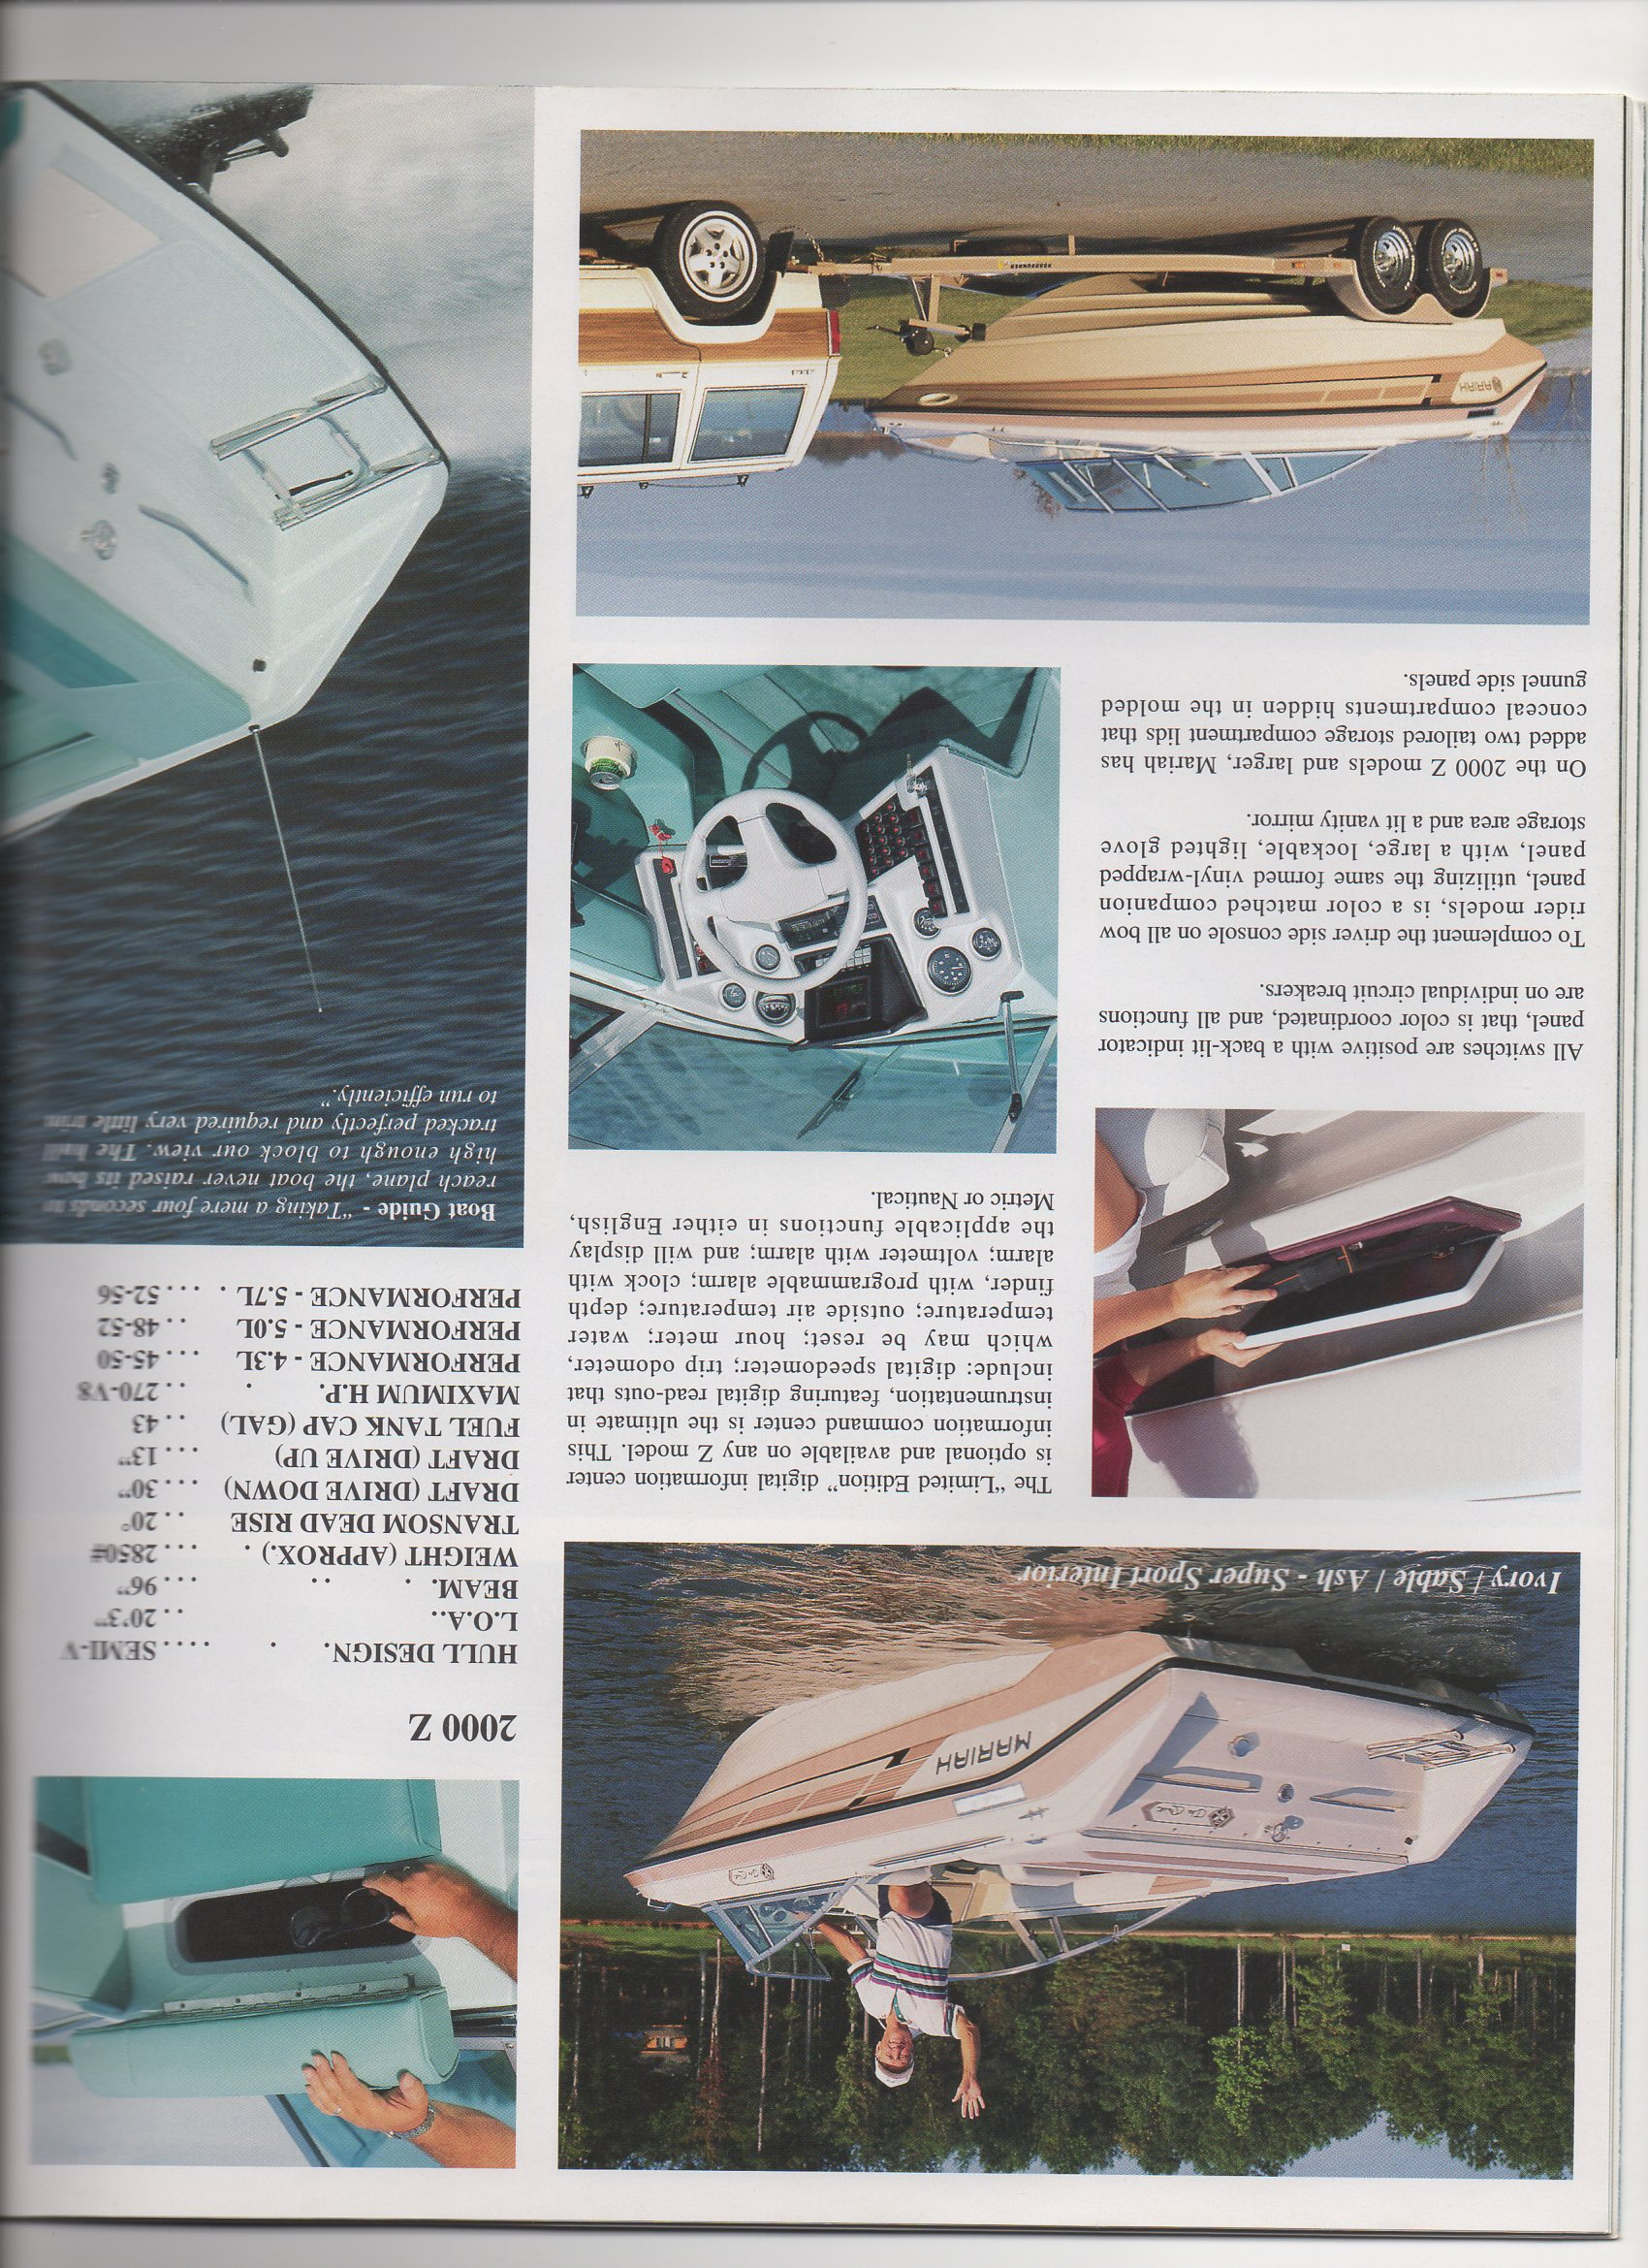 1992 mariah boats catalog